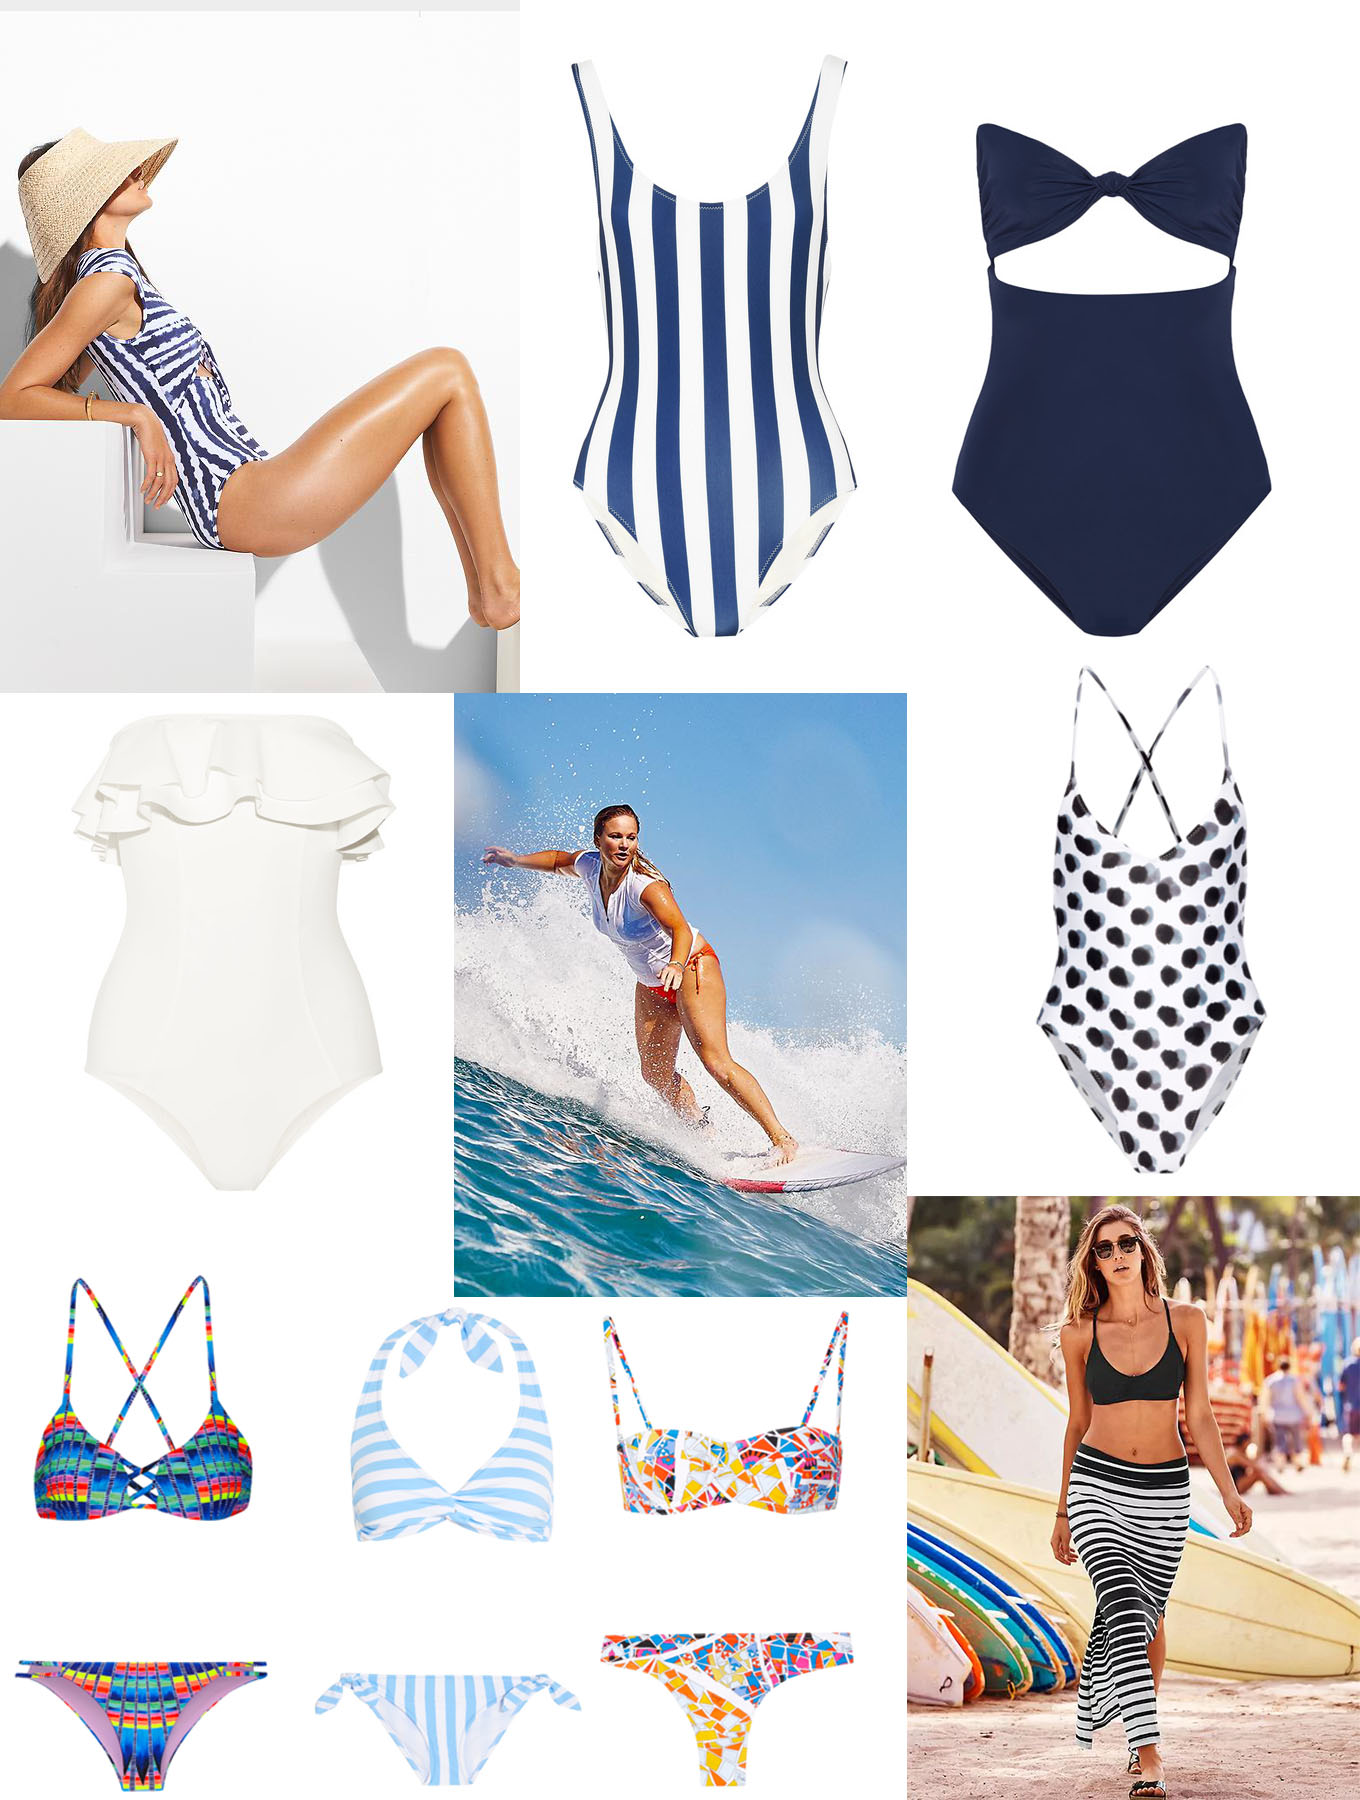 Ridgely Brode wonders how many swimsuits she should have and comes up with what she thinks will work for her on her blog Ridgely's Radar.